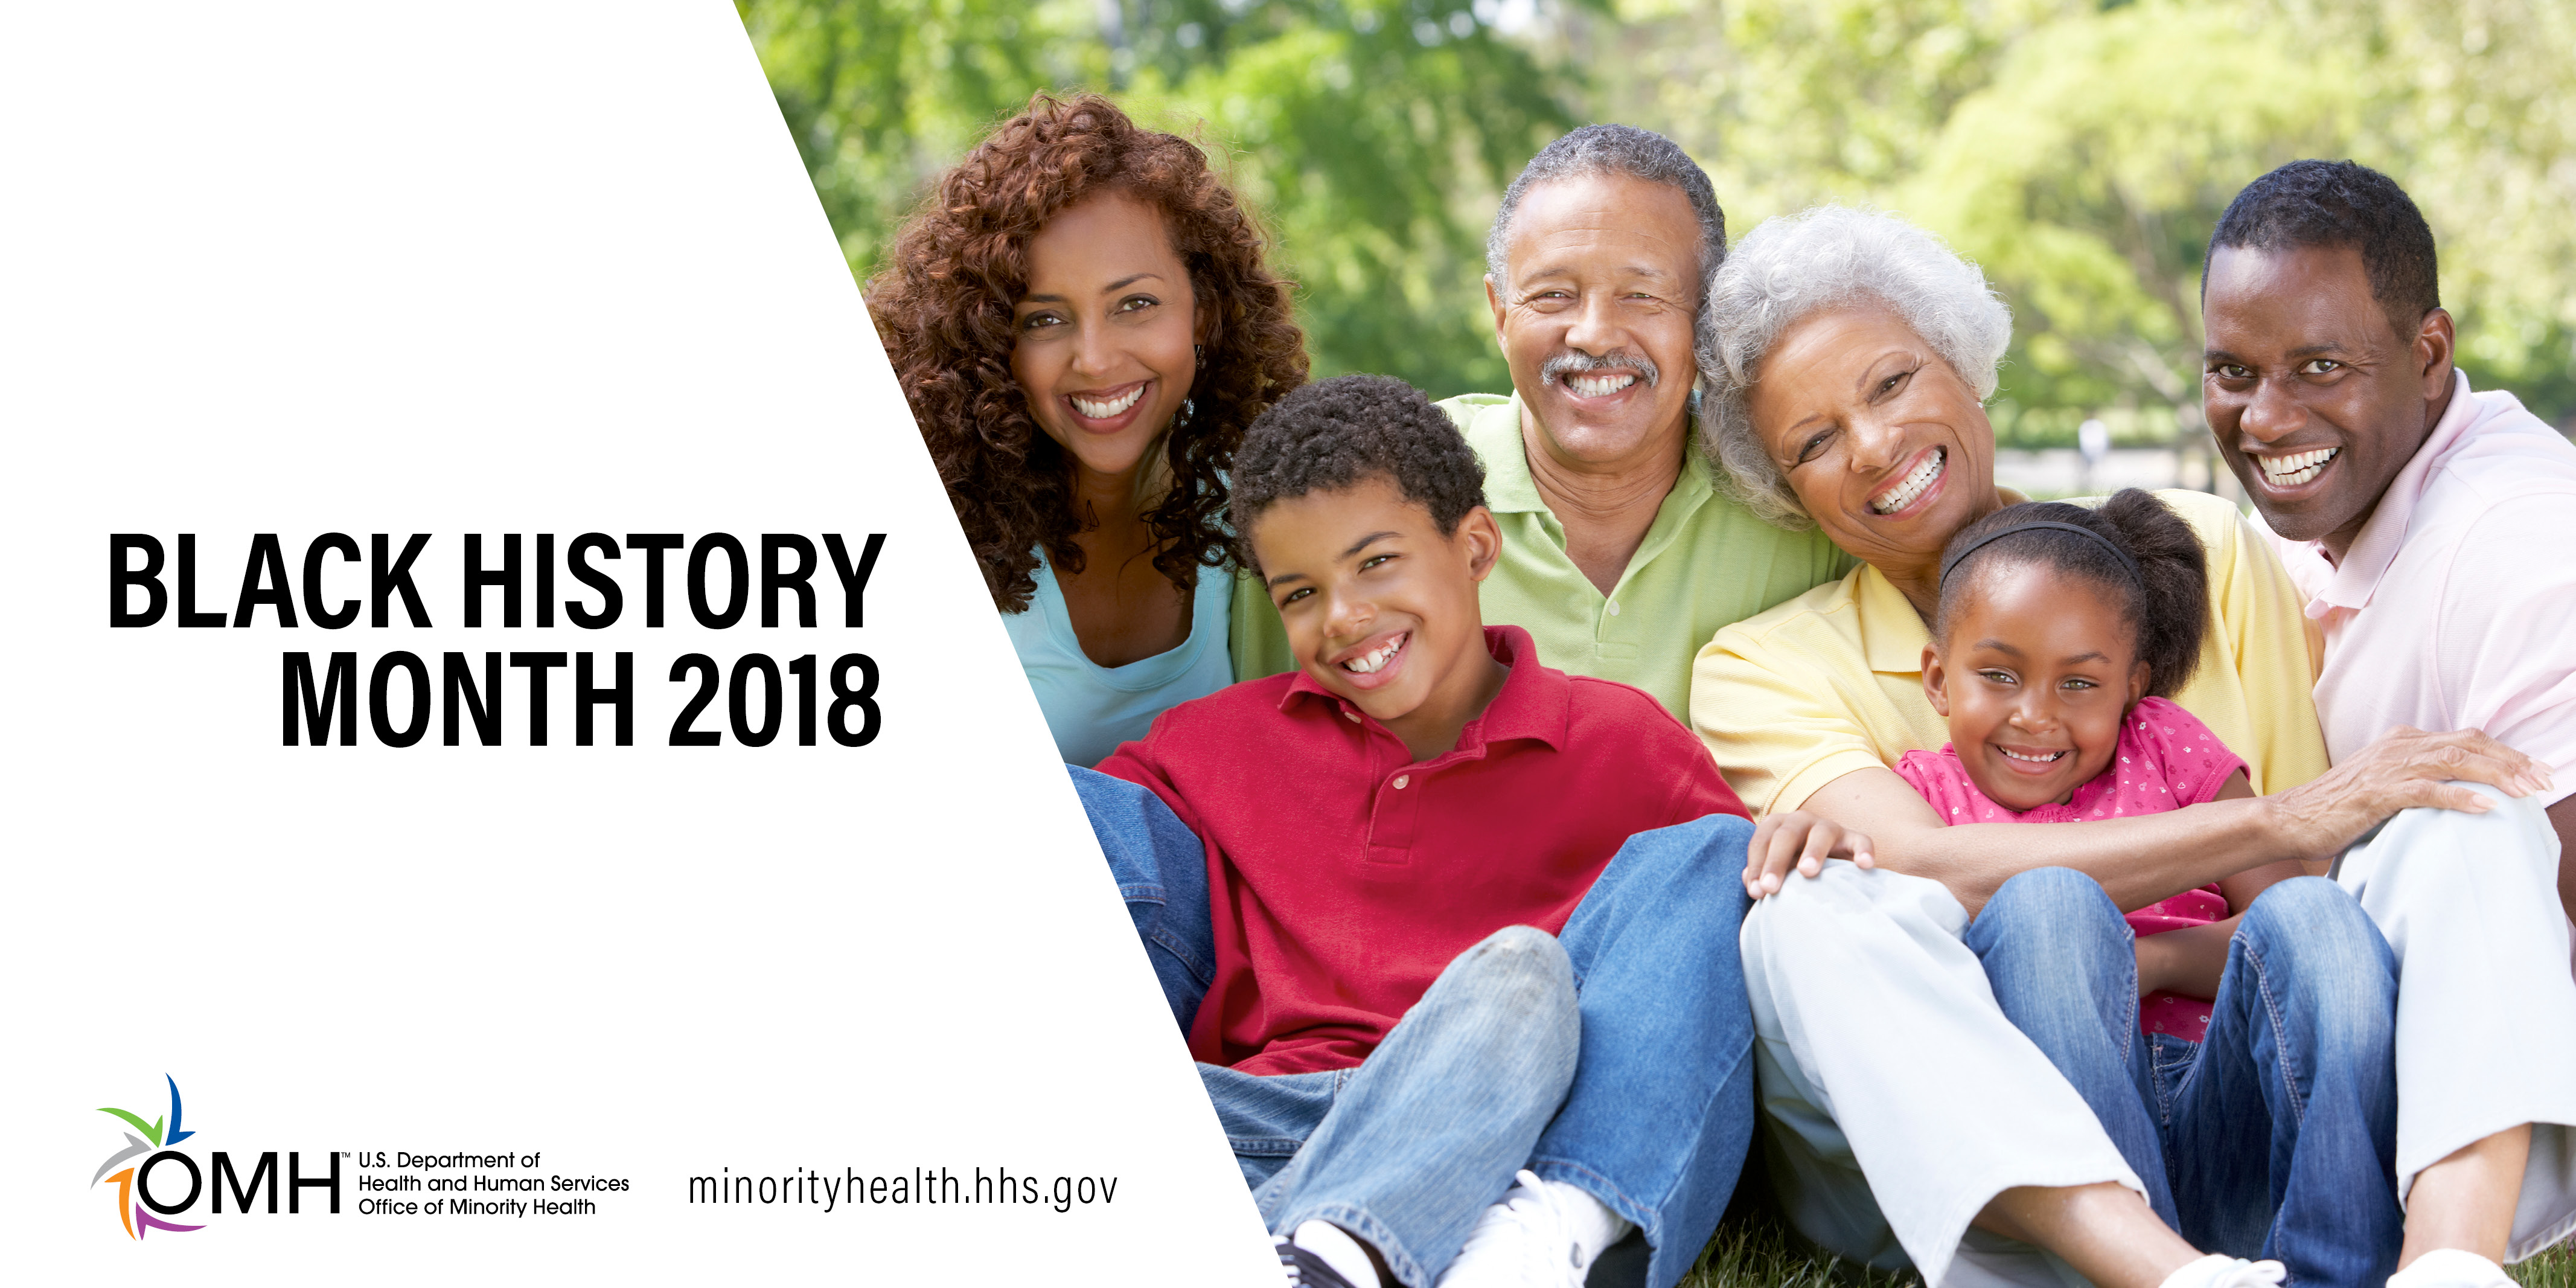 African American Family smiling - Black History Month 2018